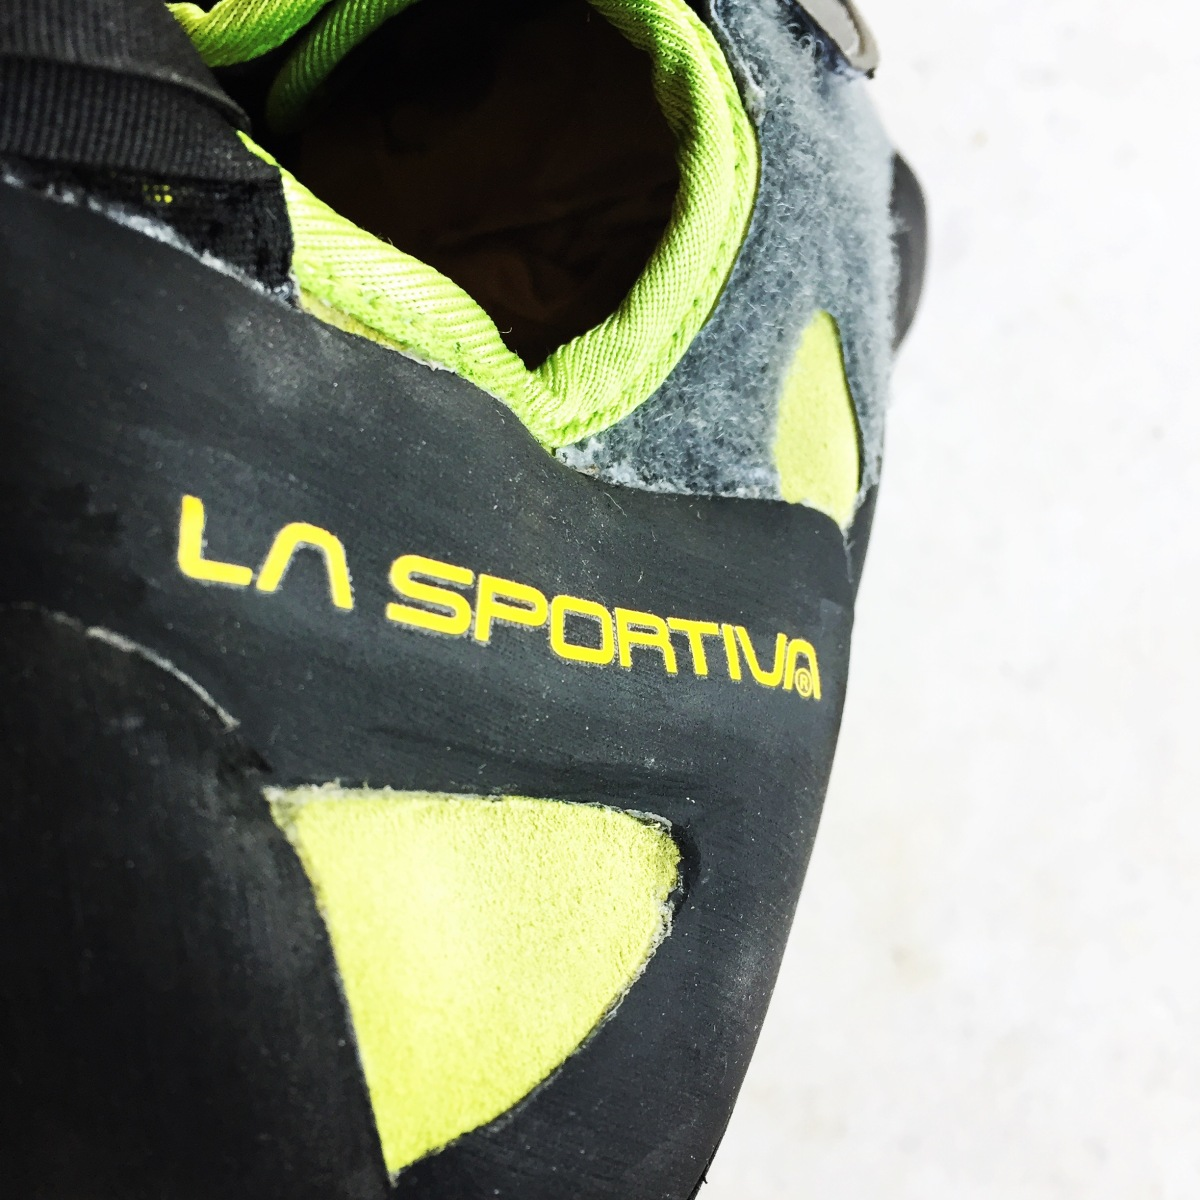 La Sportiva Tarantula Climbing Shoes Review